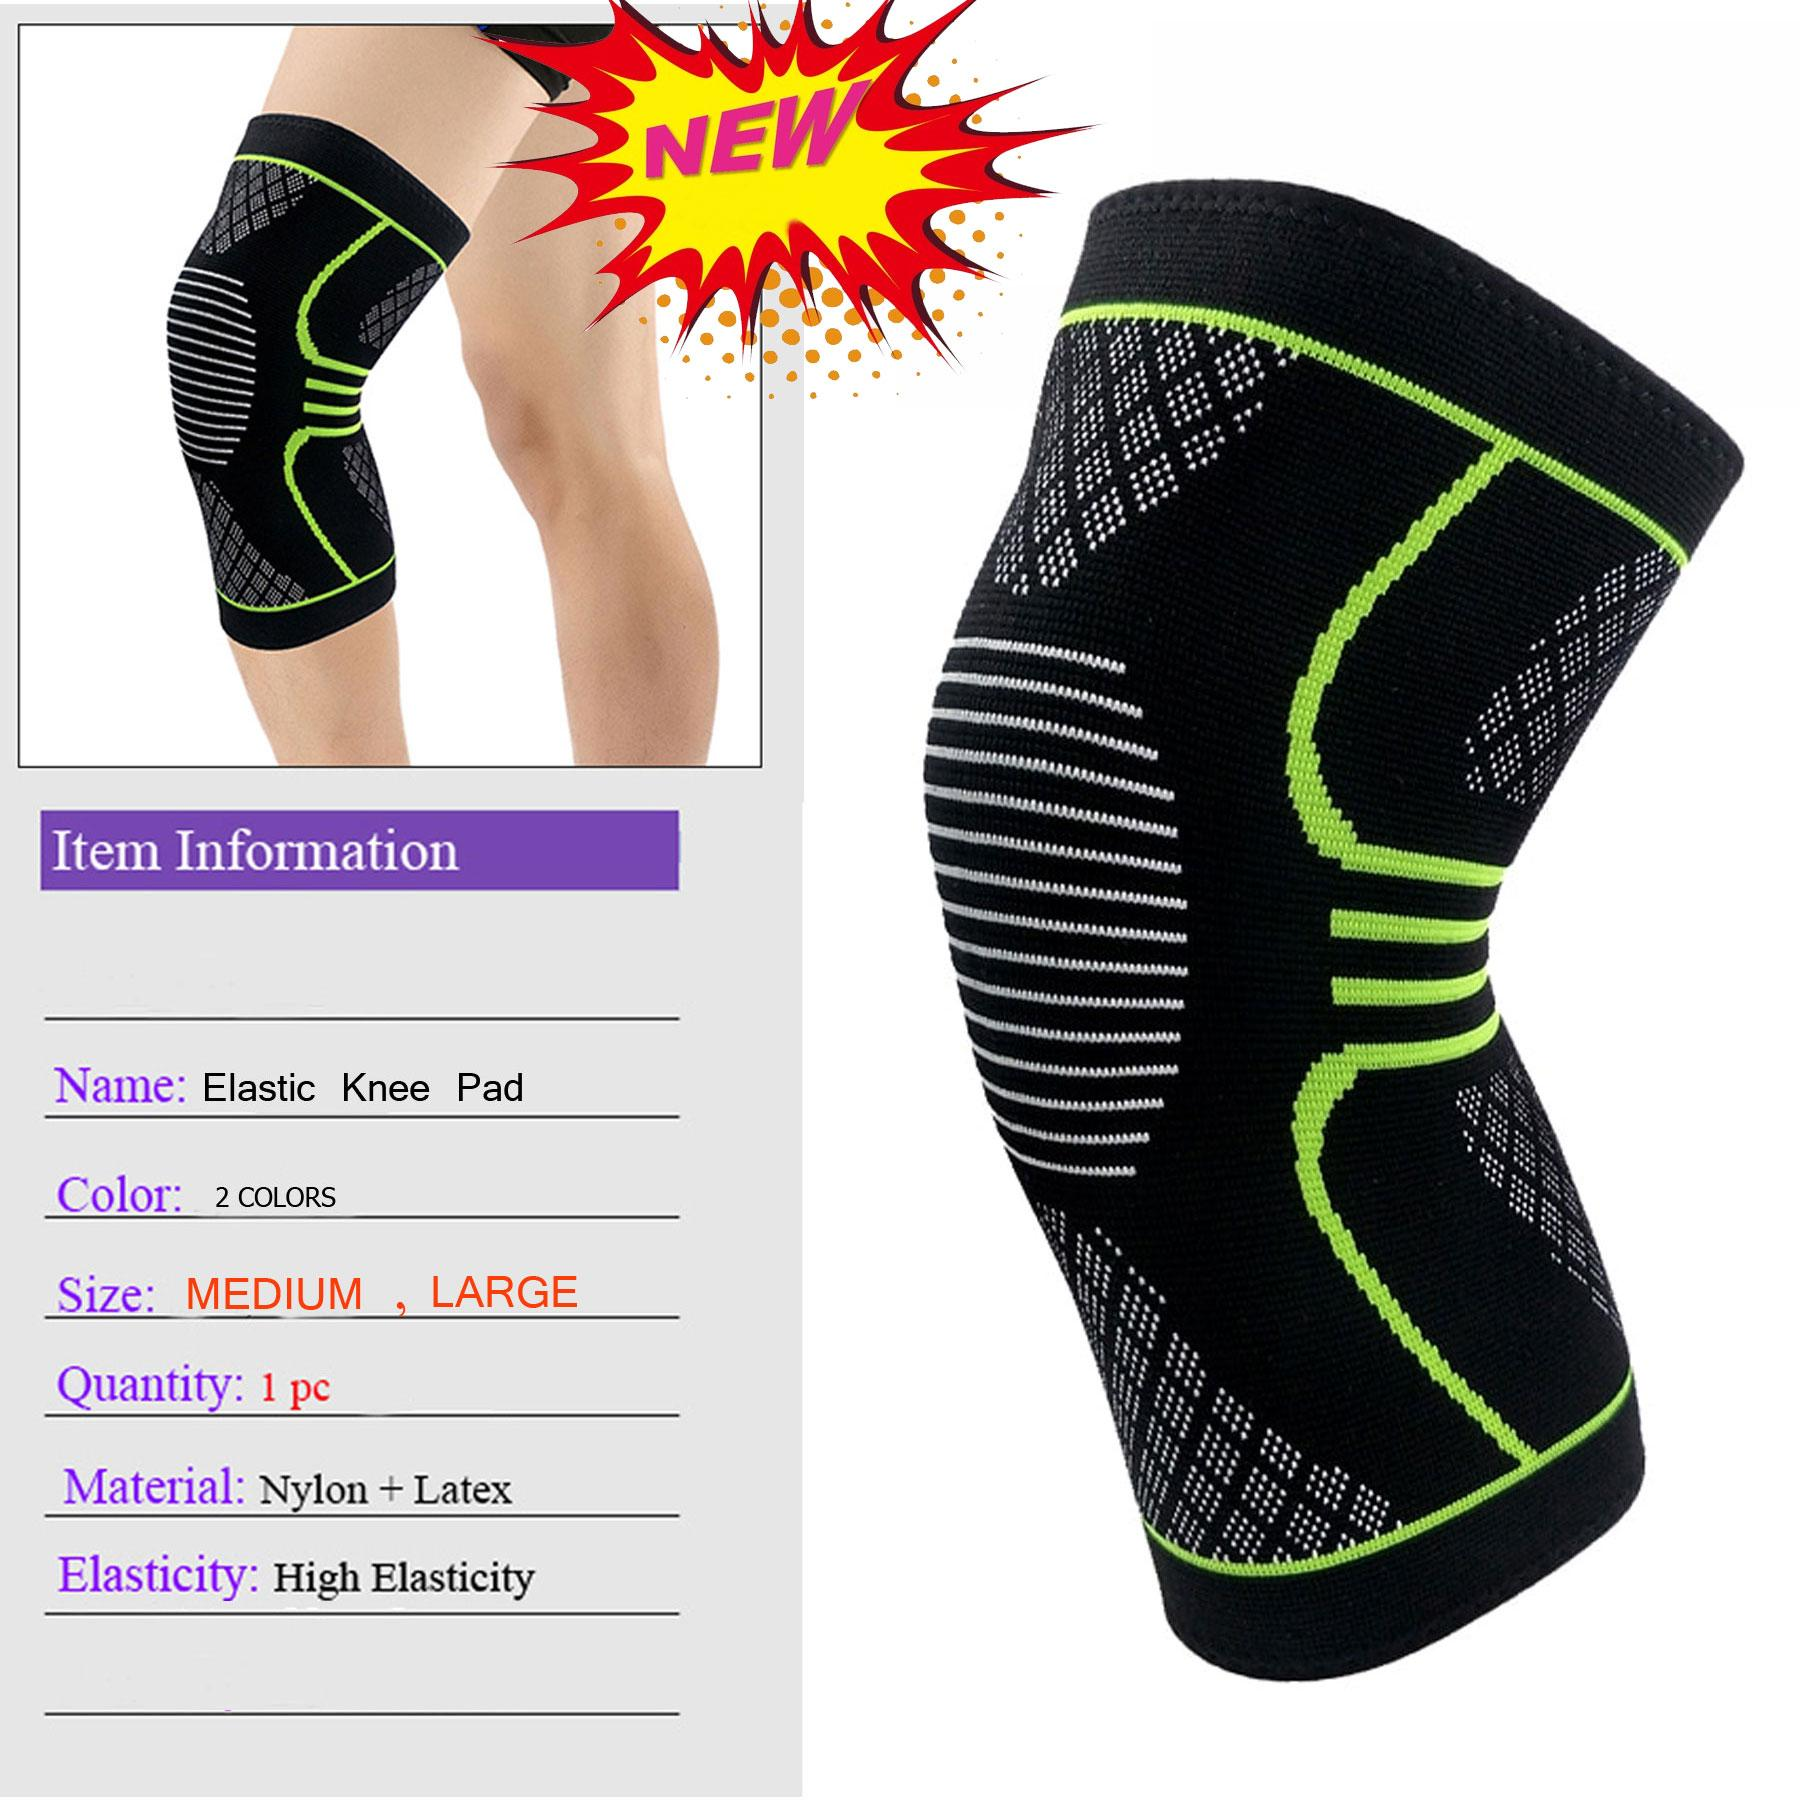 caf8c1e1023657 New 1Pc High Elastic Gym Knee Pad Warm Knee Sleeve Support Protector Sport  Fitness Running Cycling